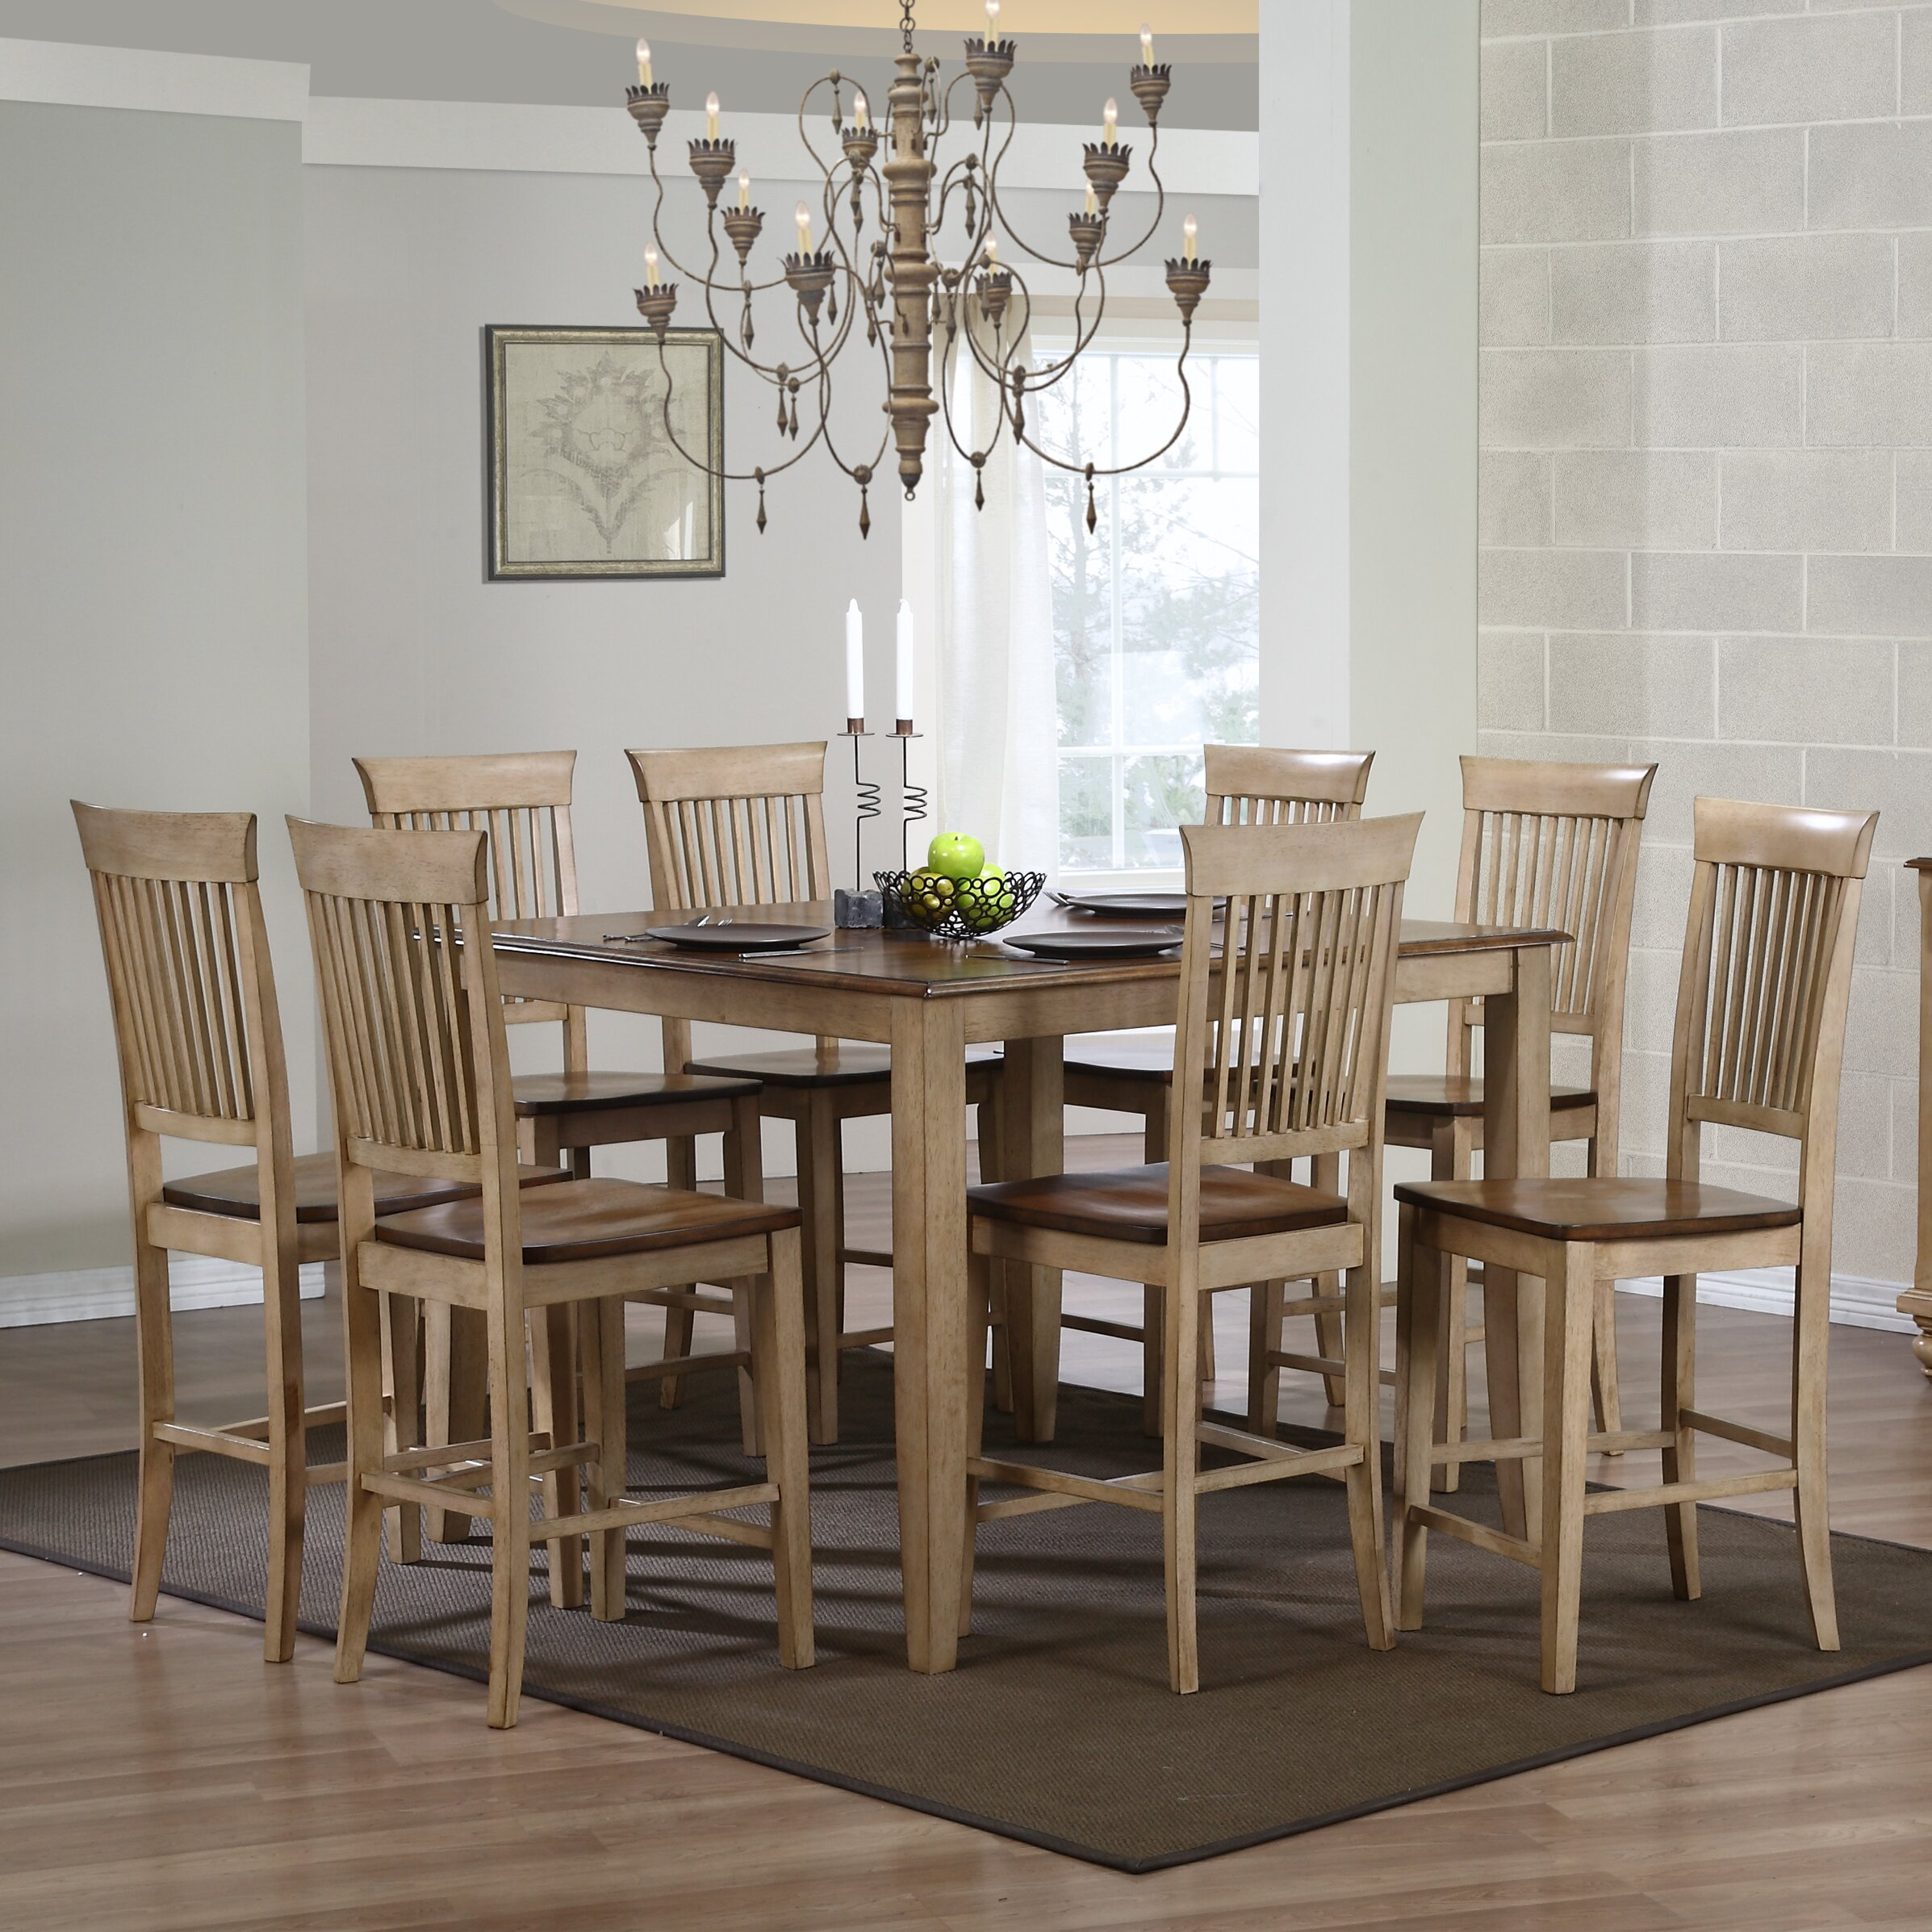 Sunset Trading Brook 10 Piece Dining Set & Reviews